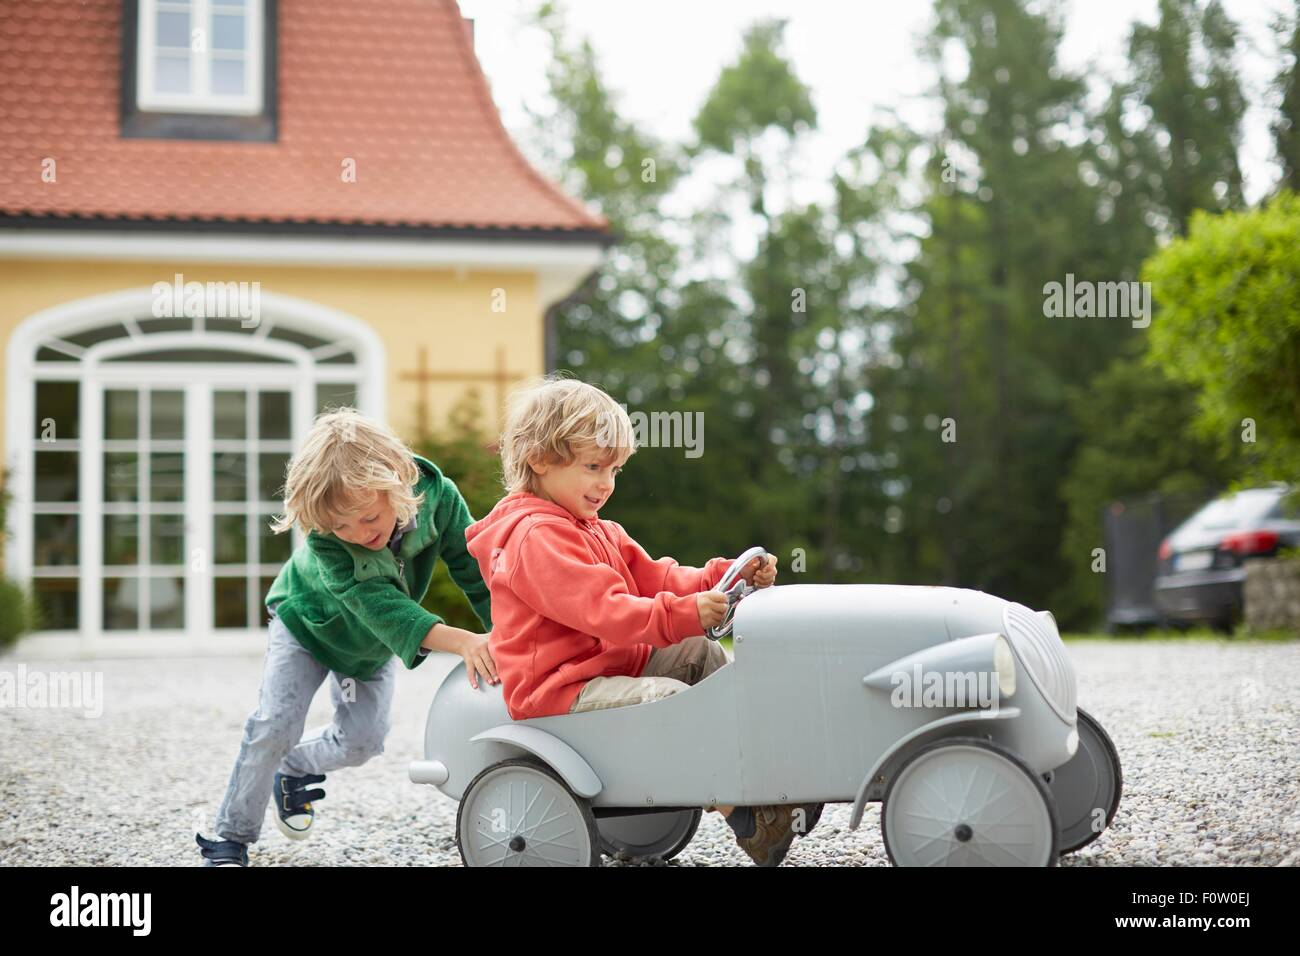 Two boys playing with vintage toy car in front of house - Stock Image